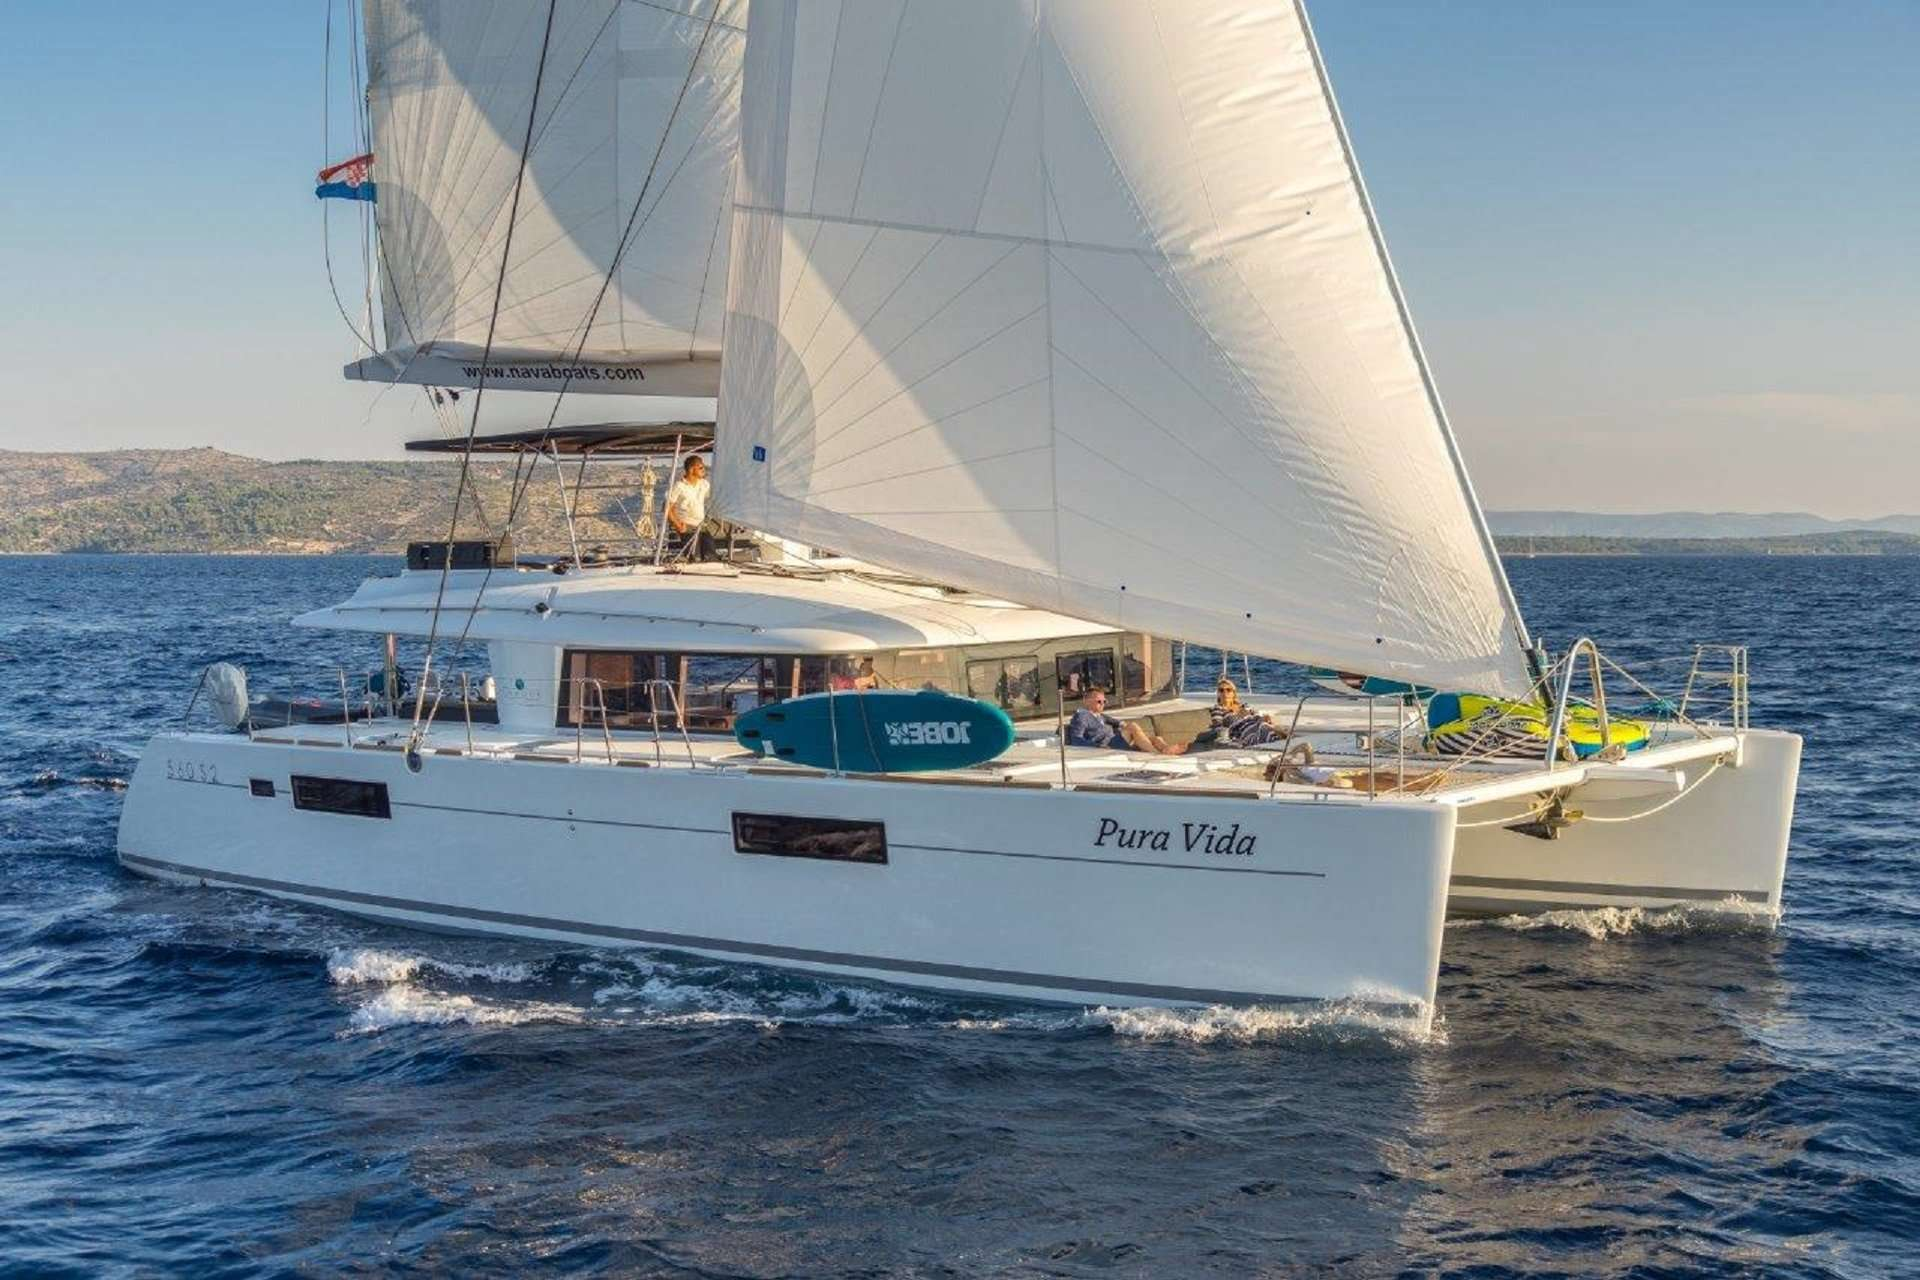 Cat Yacht 'Cat', 10 PAX, 2 Crew, 55.00 Ft, 17.00 Meters, Built 2016, Lagoon, Refit Year